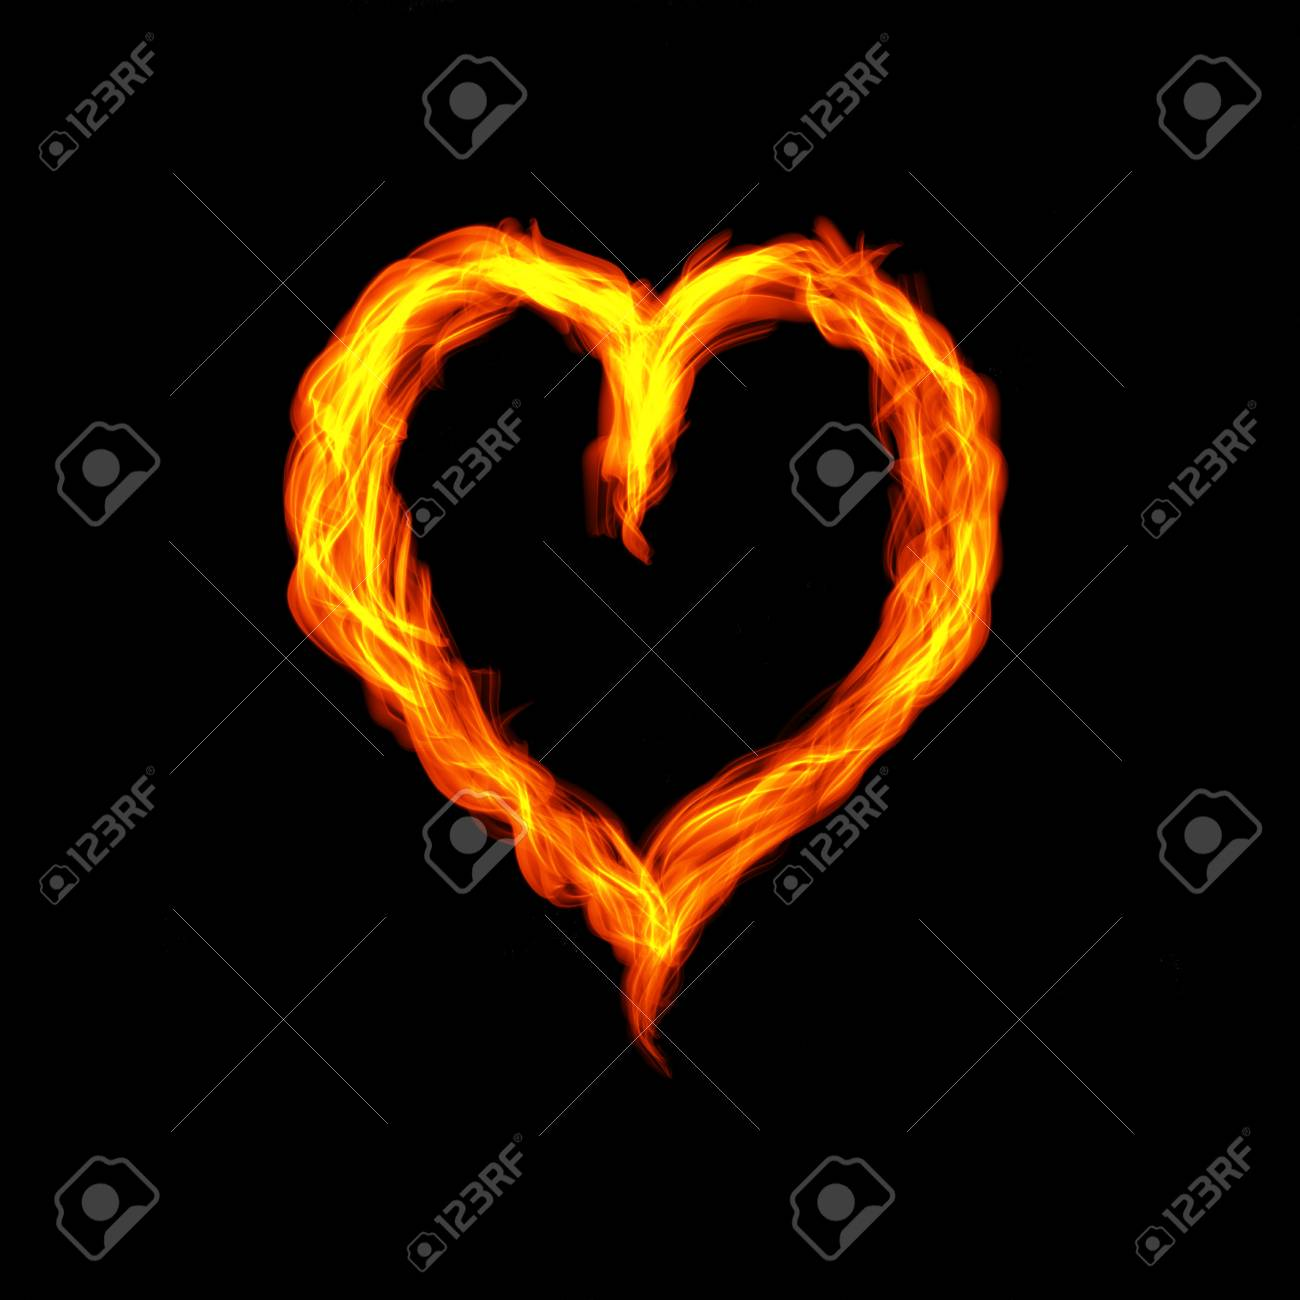 Hot Fire Heart Burning On Black Background Passion And Desire 1300x1300